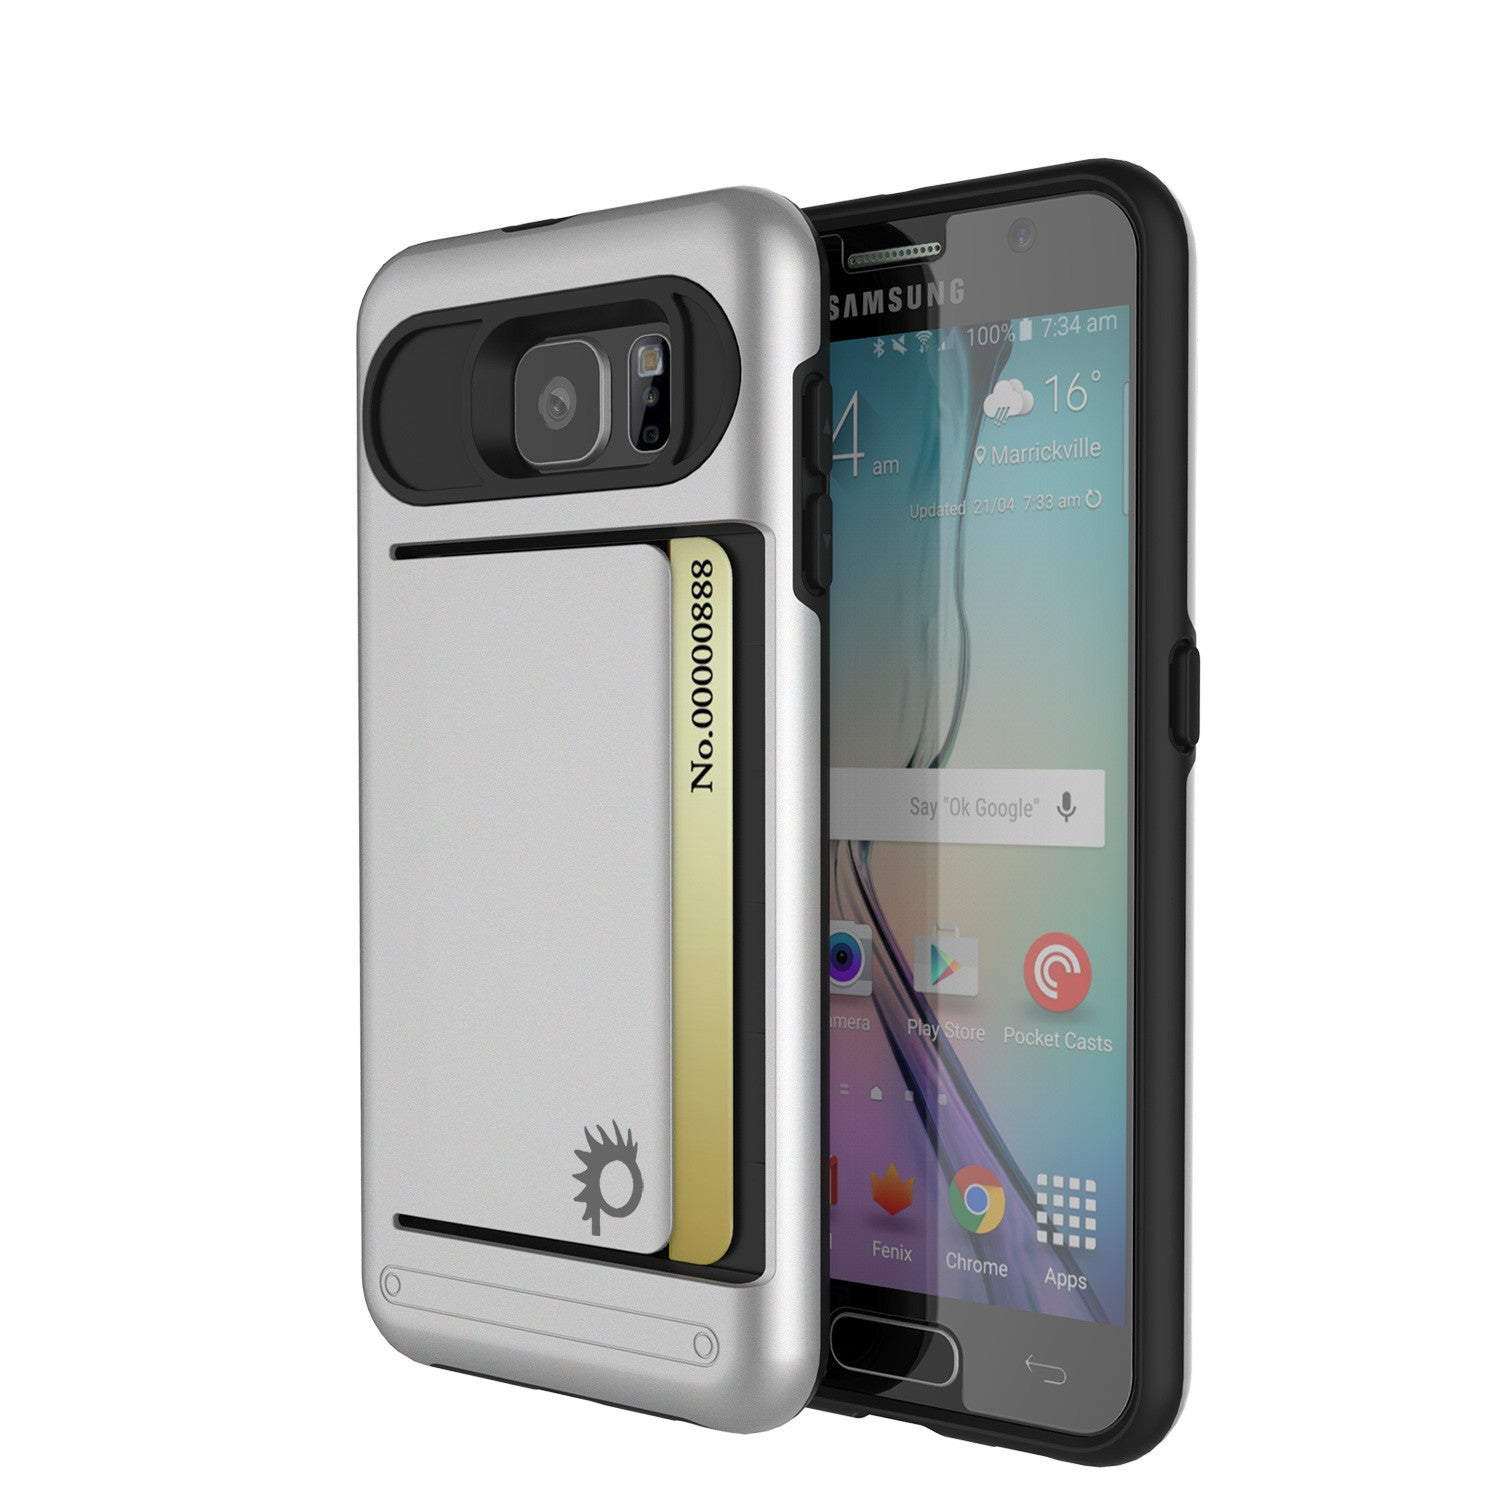 Galaxy s6 Case PunkCase CLUTCH Silver Series Slim Armor Soft Cover Case w/ Tempered Glass